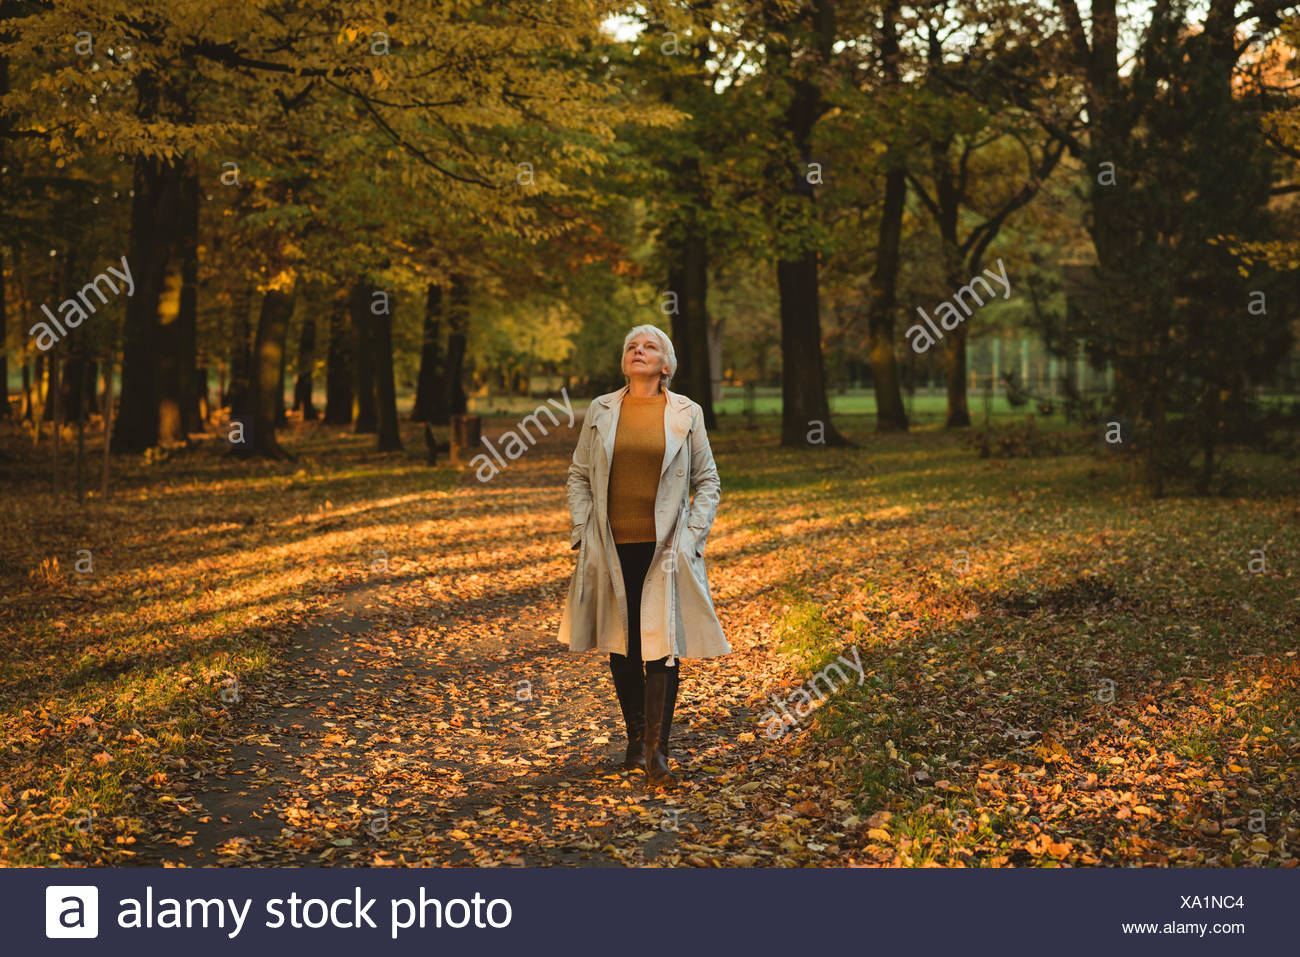 Thoughtful senior woman in jacket looking up in the autumn forest - Stock Image